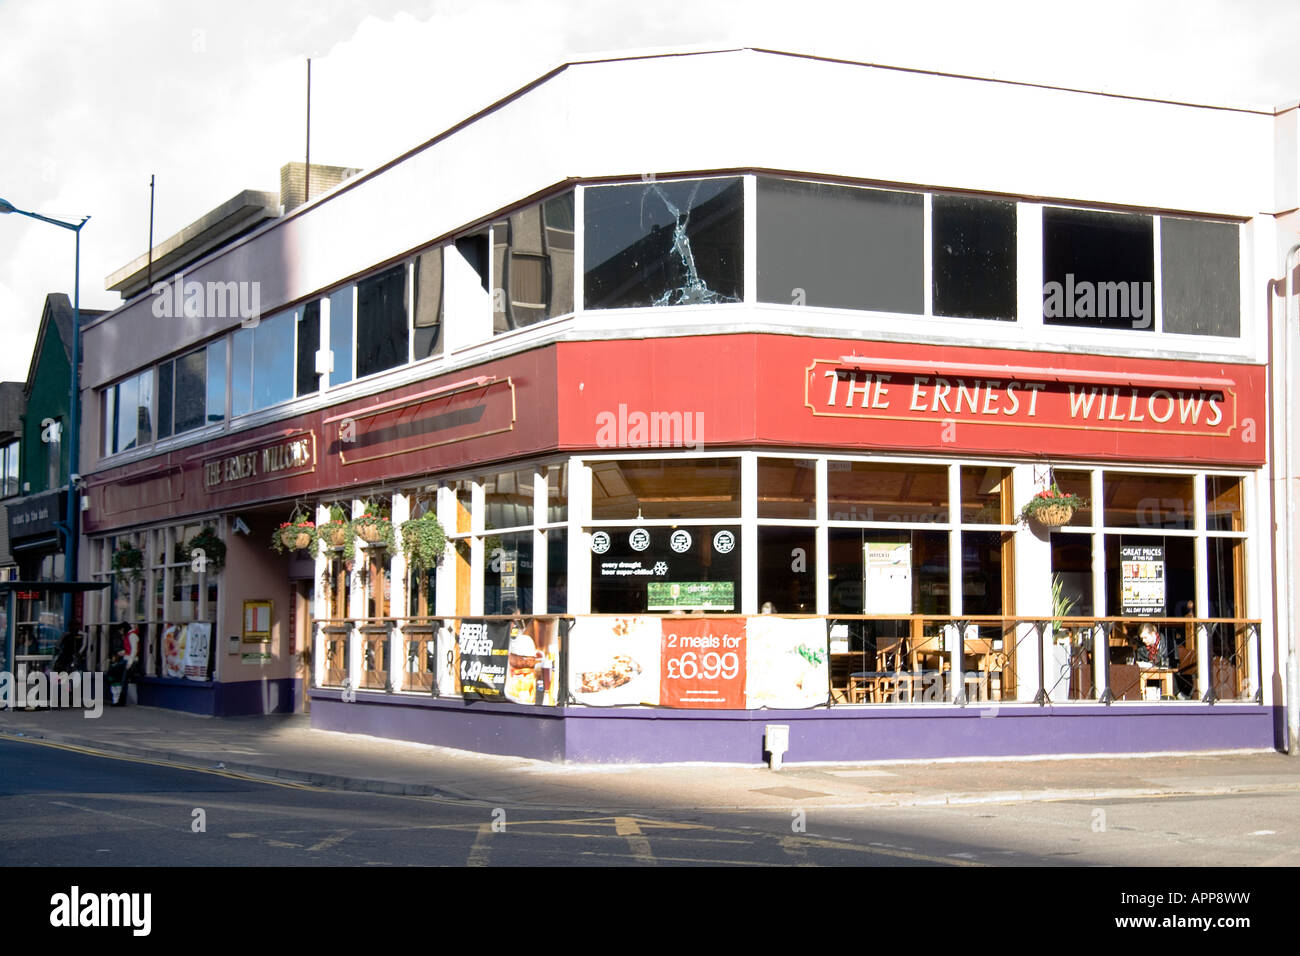 The Ernest Willows public house City Rd Cardiff - Stock Image